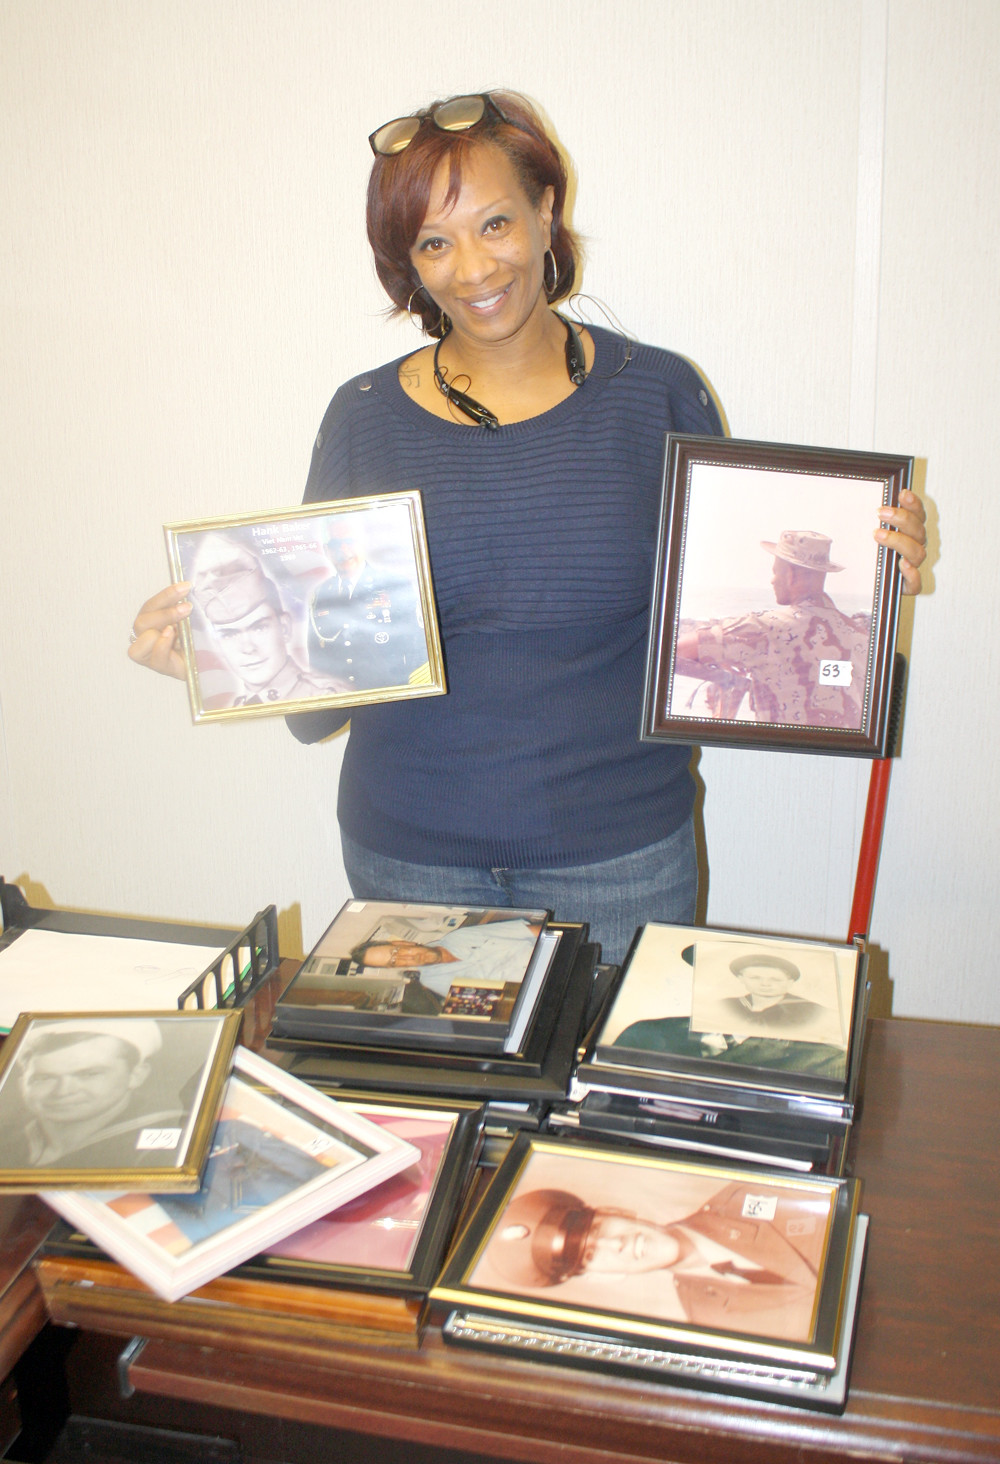 SONYA LOCKLIN, manager of the Veterans First Resale Store on South Lee Highway, shows a few photographs of veterans to be displayed on a store wall.